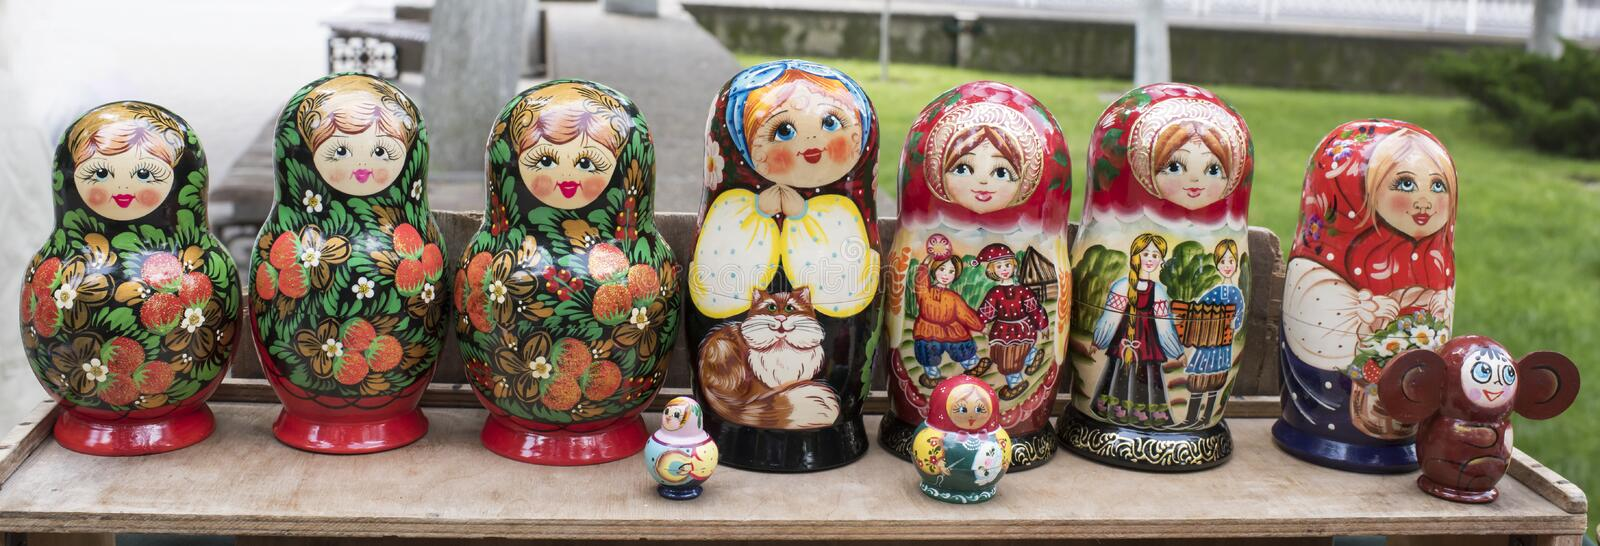 Shelf store wooden souvenirs - matryoshka dolls royalty free stock photo